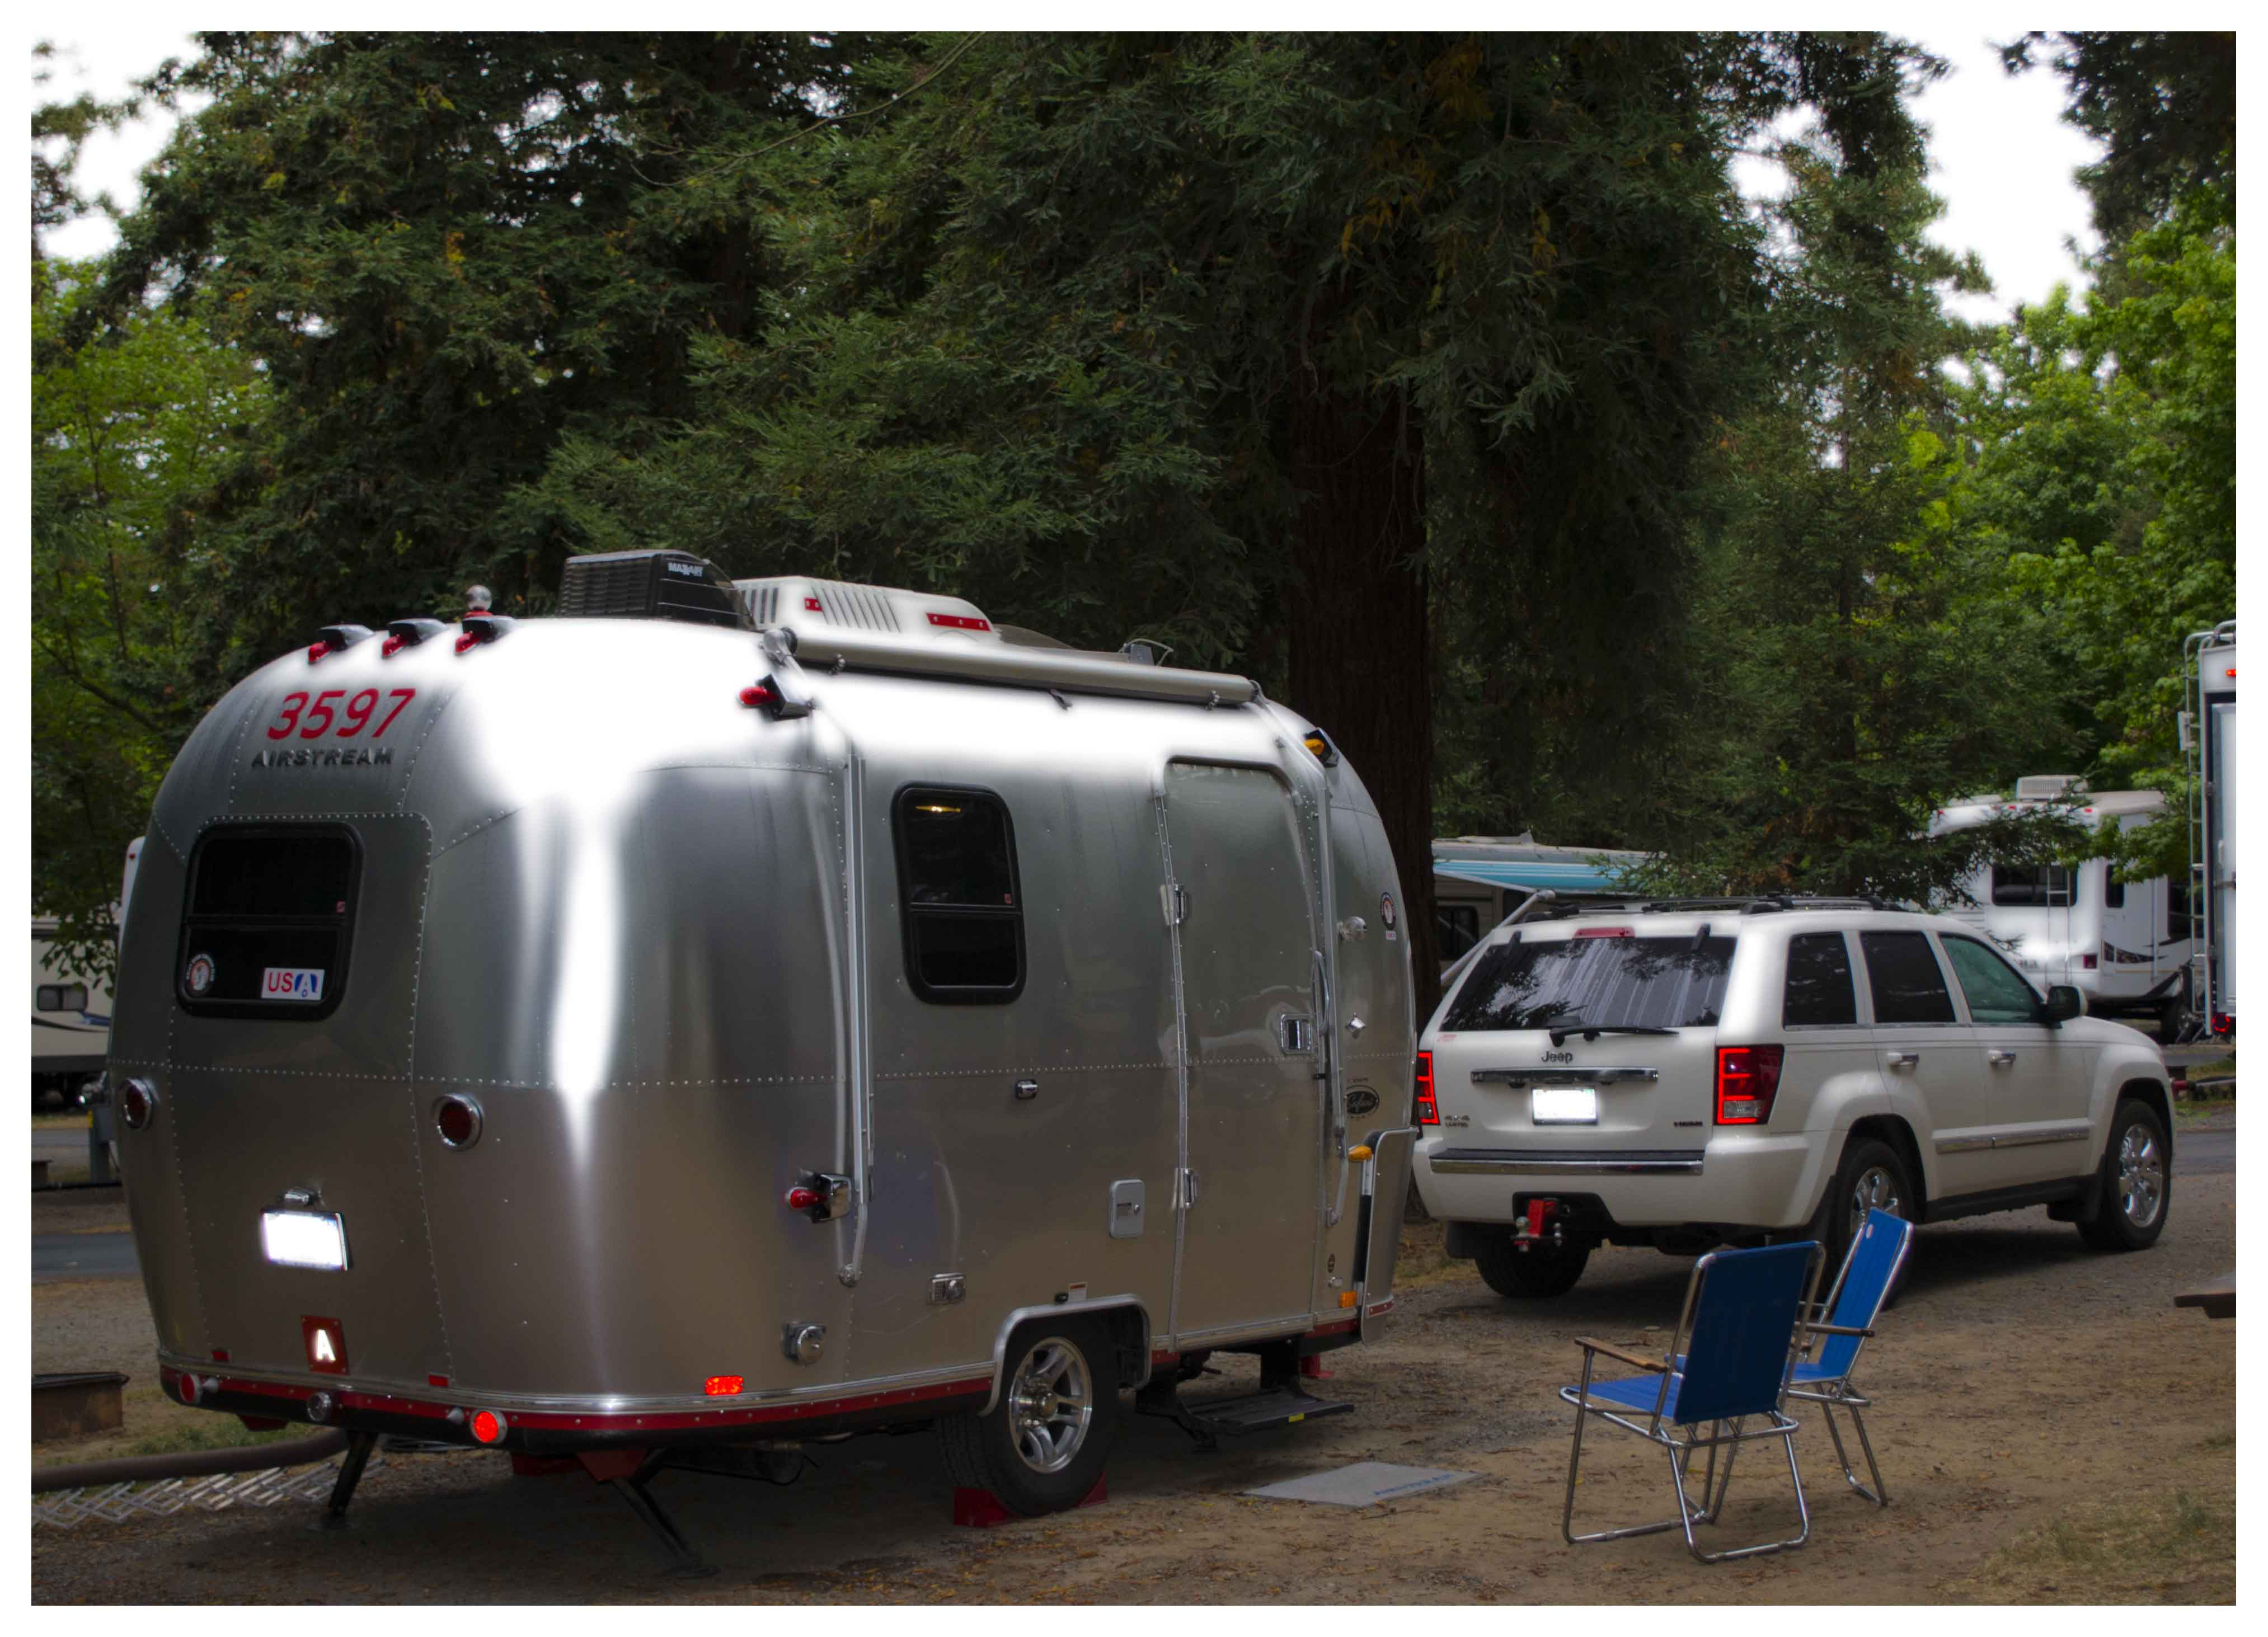 Buying And Selling, Rv Lifestyle, Travel